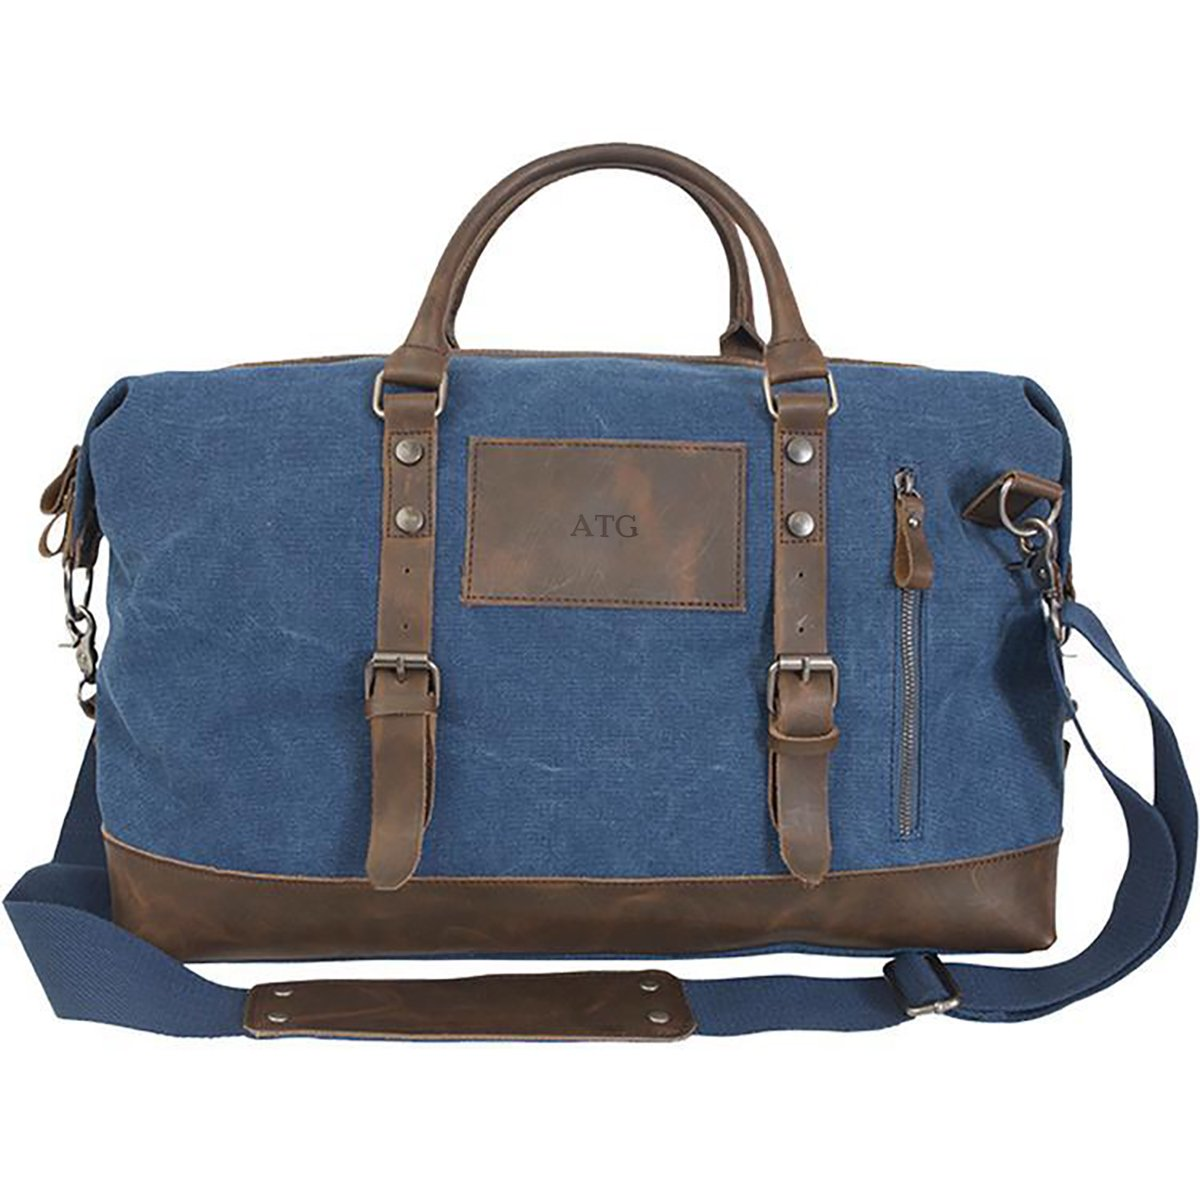 A Gift Personalized Personalized Blue Canvas and Leather Weekender Duffel Bag - Deboss